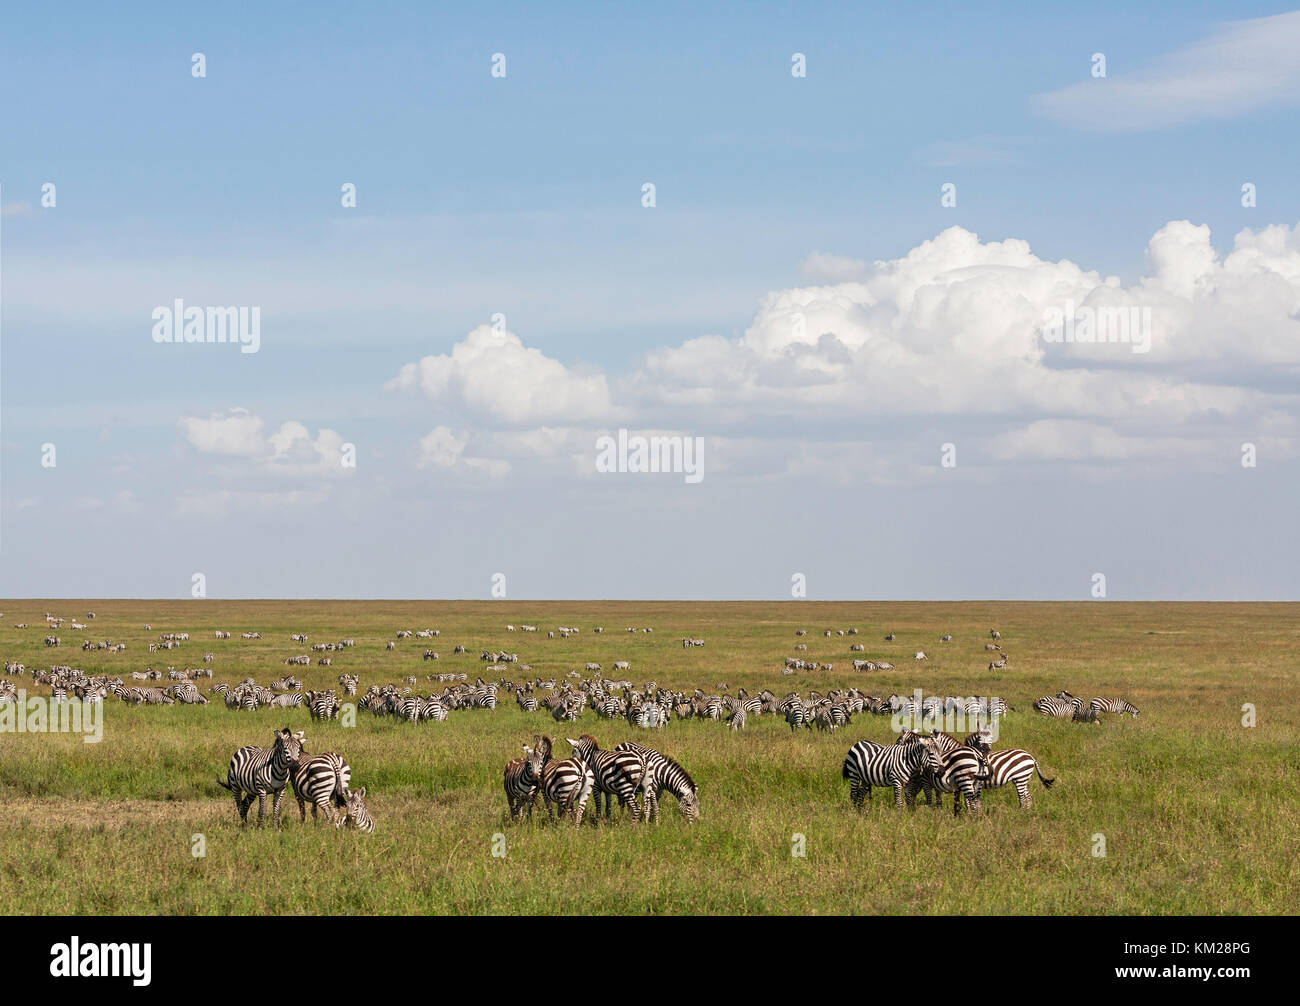 Zebras grazing in the Serengeti, Tanzania, Africa - Stock Image